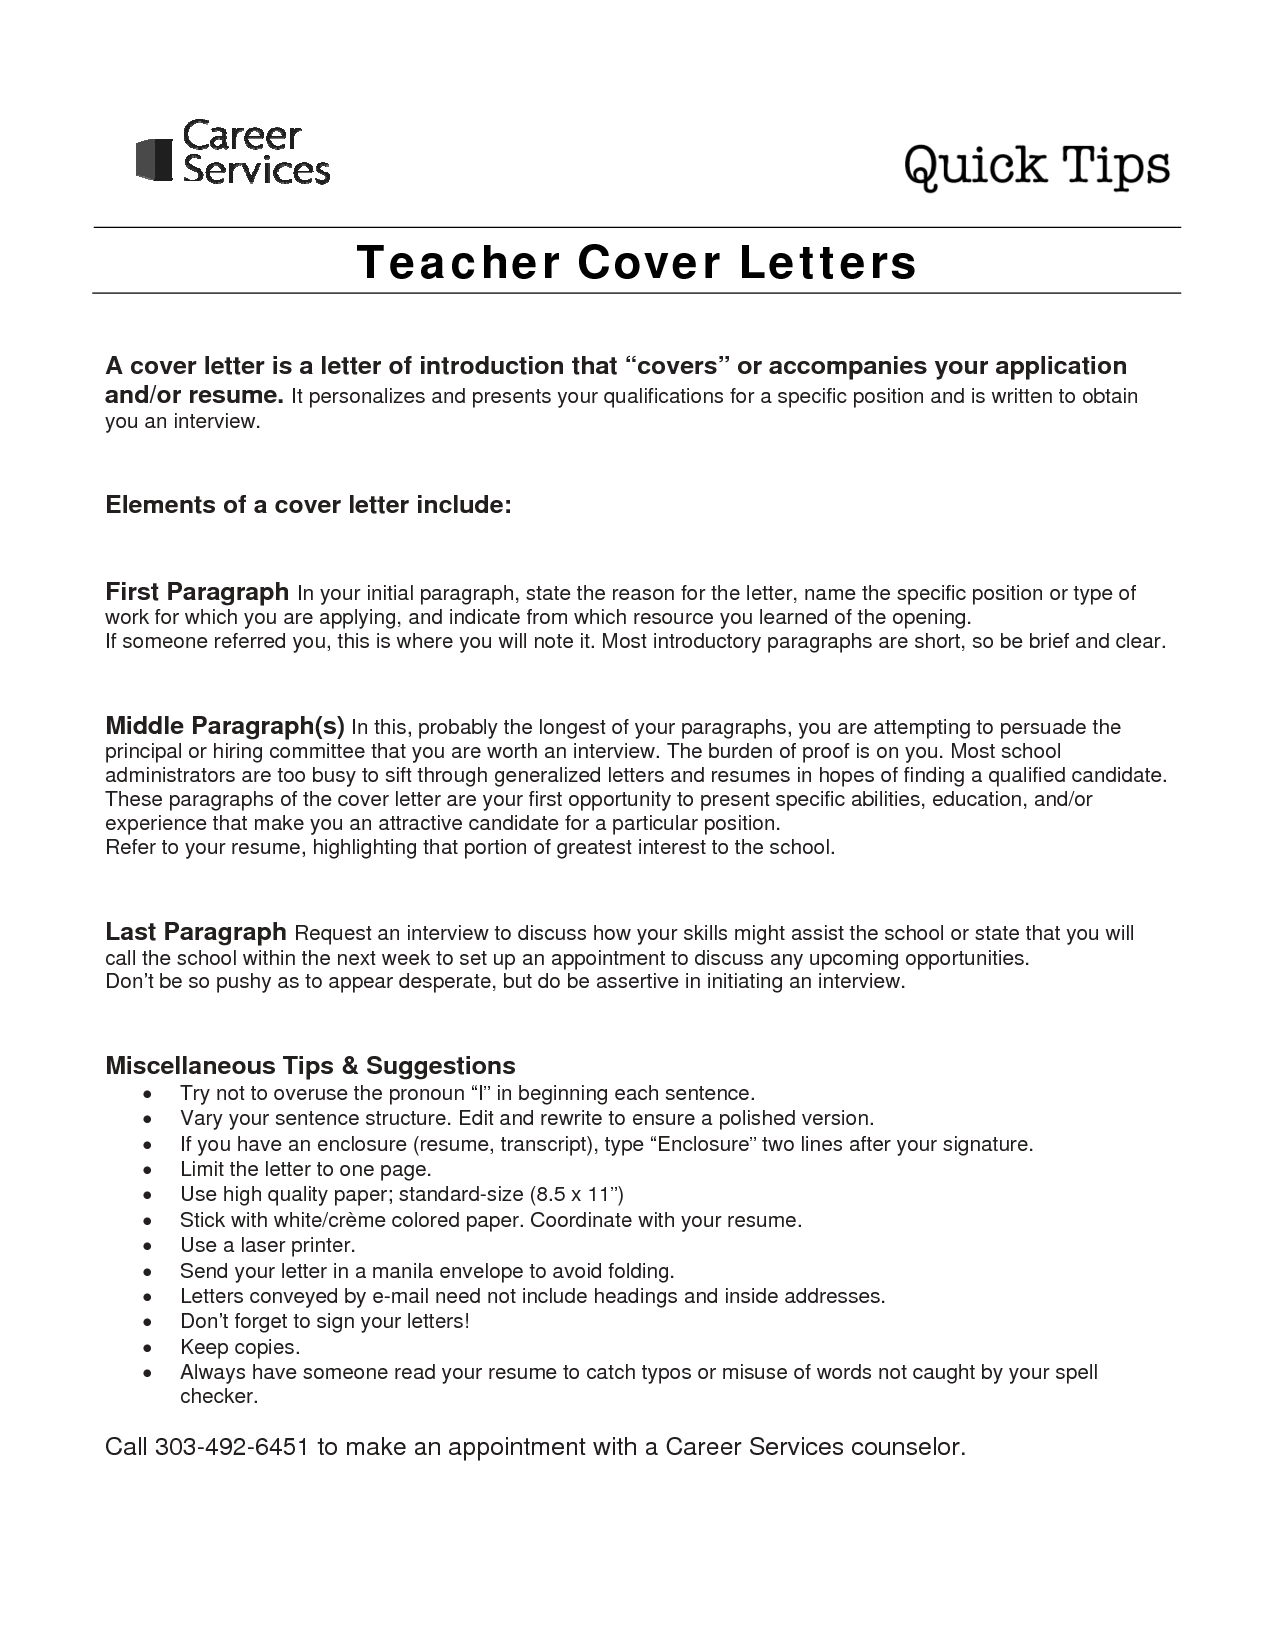 cover letter so you leaves impression resumesdesign com cover letter so you leaves impression resumesdesign com · resume lettersapp